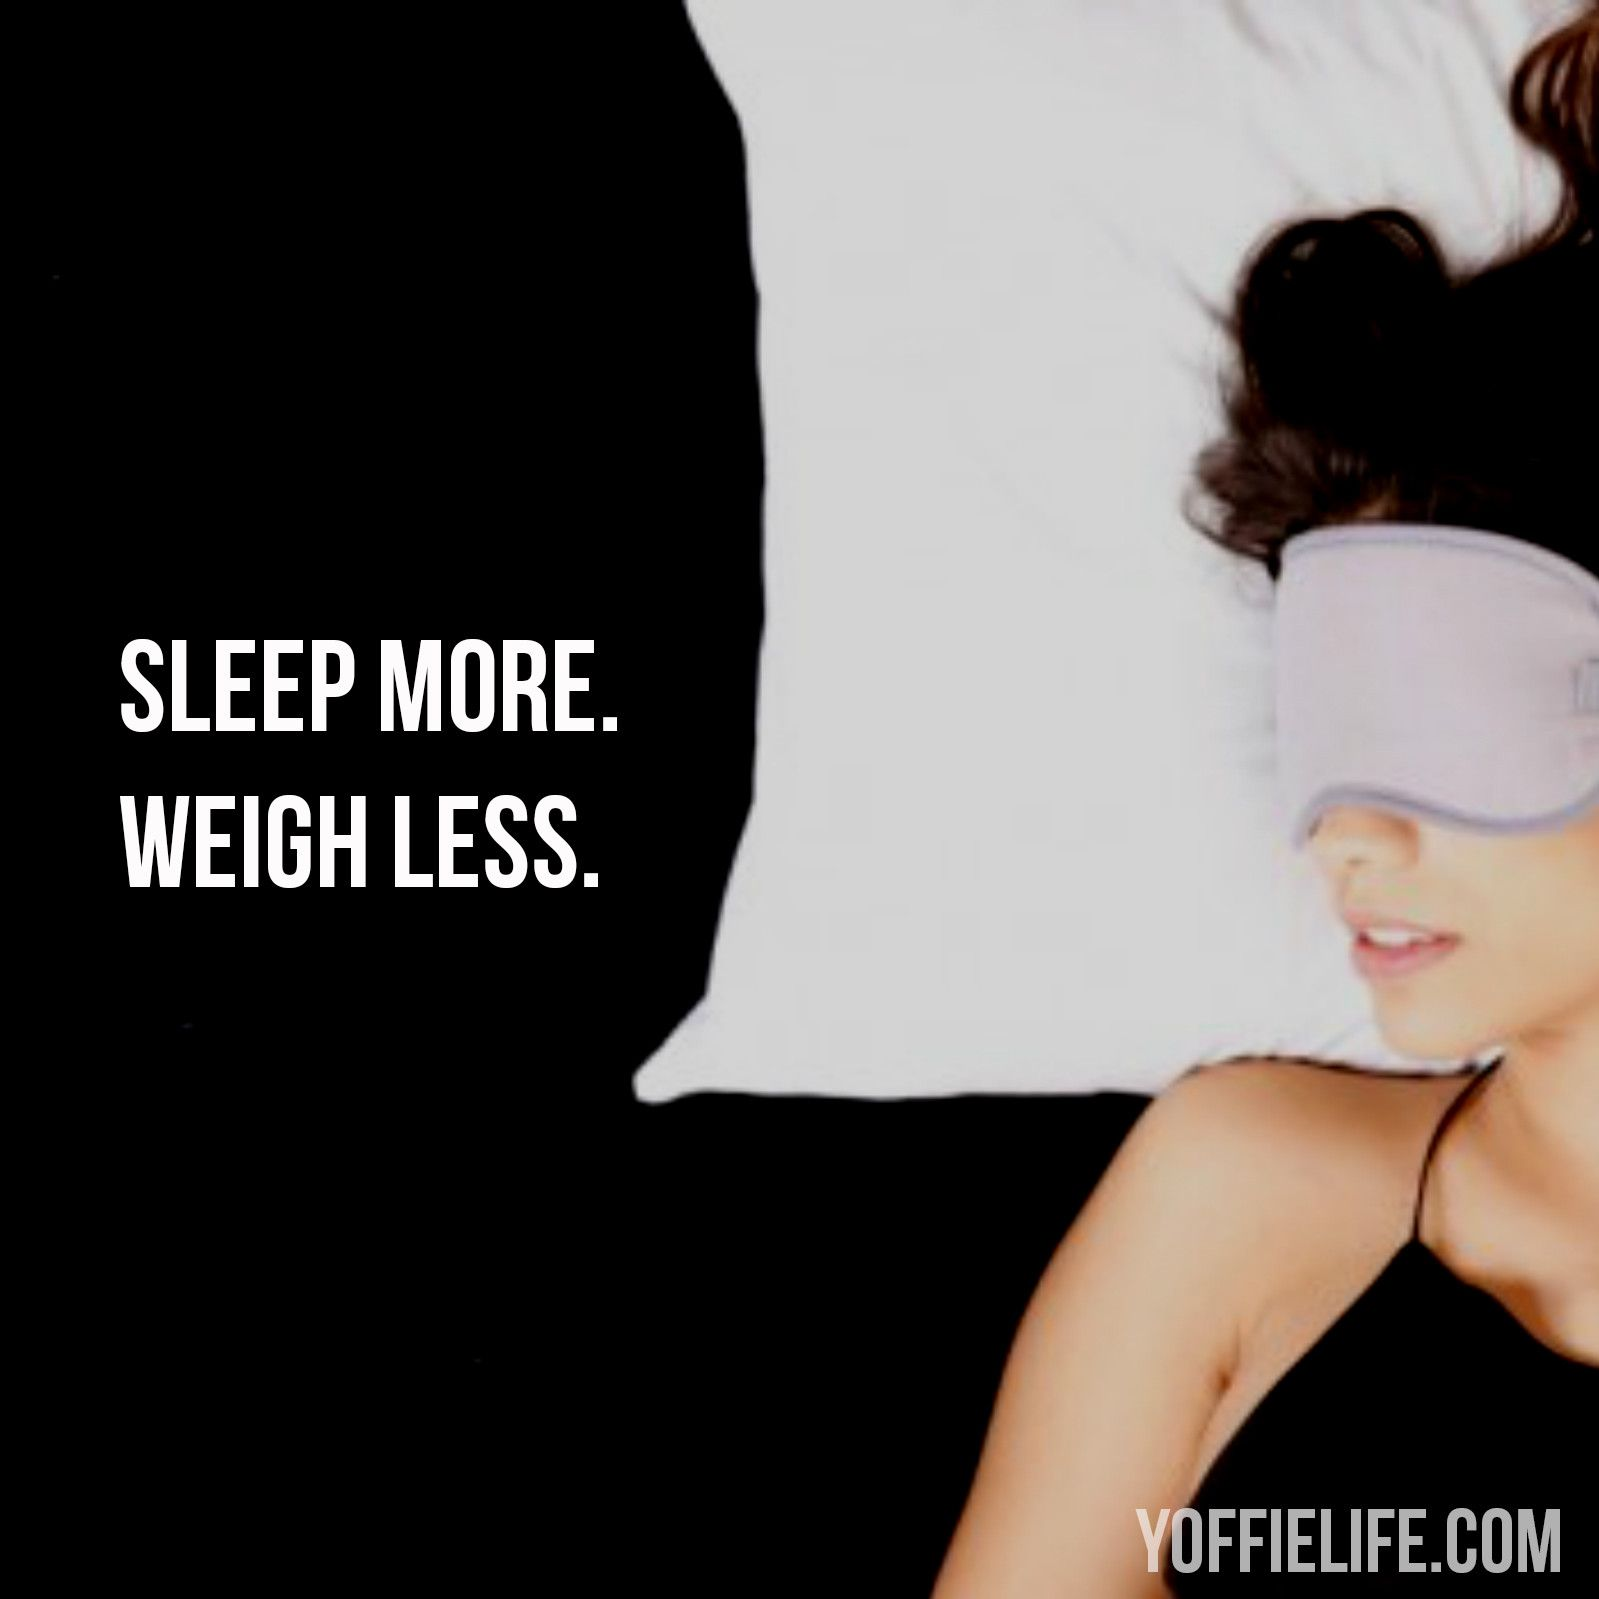 Studies reveal lack of sleep makes you prone to eating high-calorie foods. Getting better and more sleep may be all you need to reach your health goals → http://bit.ly/1Pcxghi #sleep #sleepy #sleepyhead #weight #weightloss #goals #health #healthy #healthgoals #Satisfy #YoffieLife #wellness #holisticwellness #tip #nourish #instagood #naptime #rest #relax #relaxation #recharge #energize #bed #bedtime